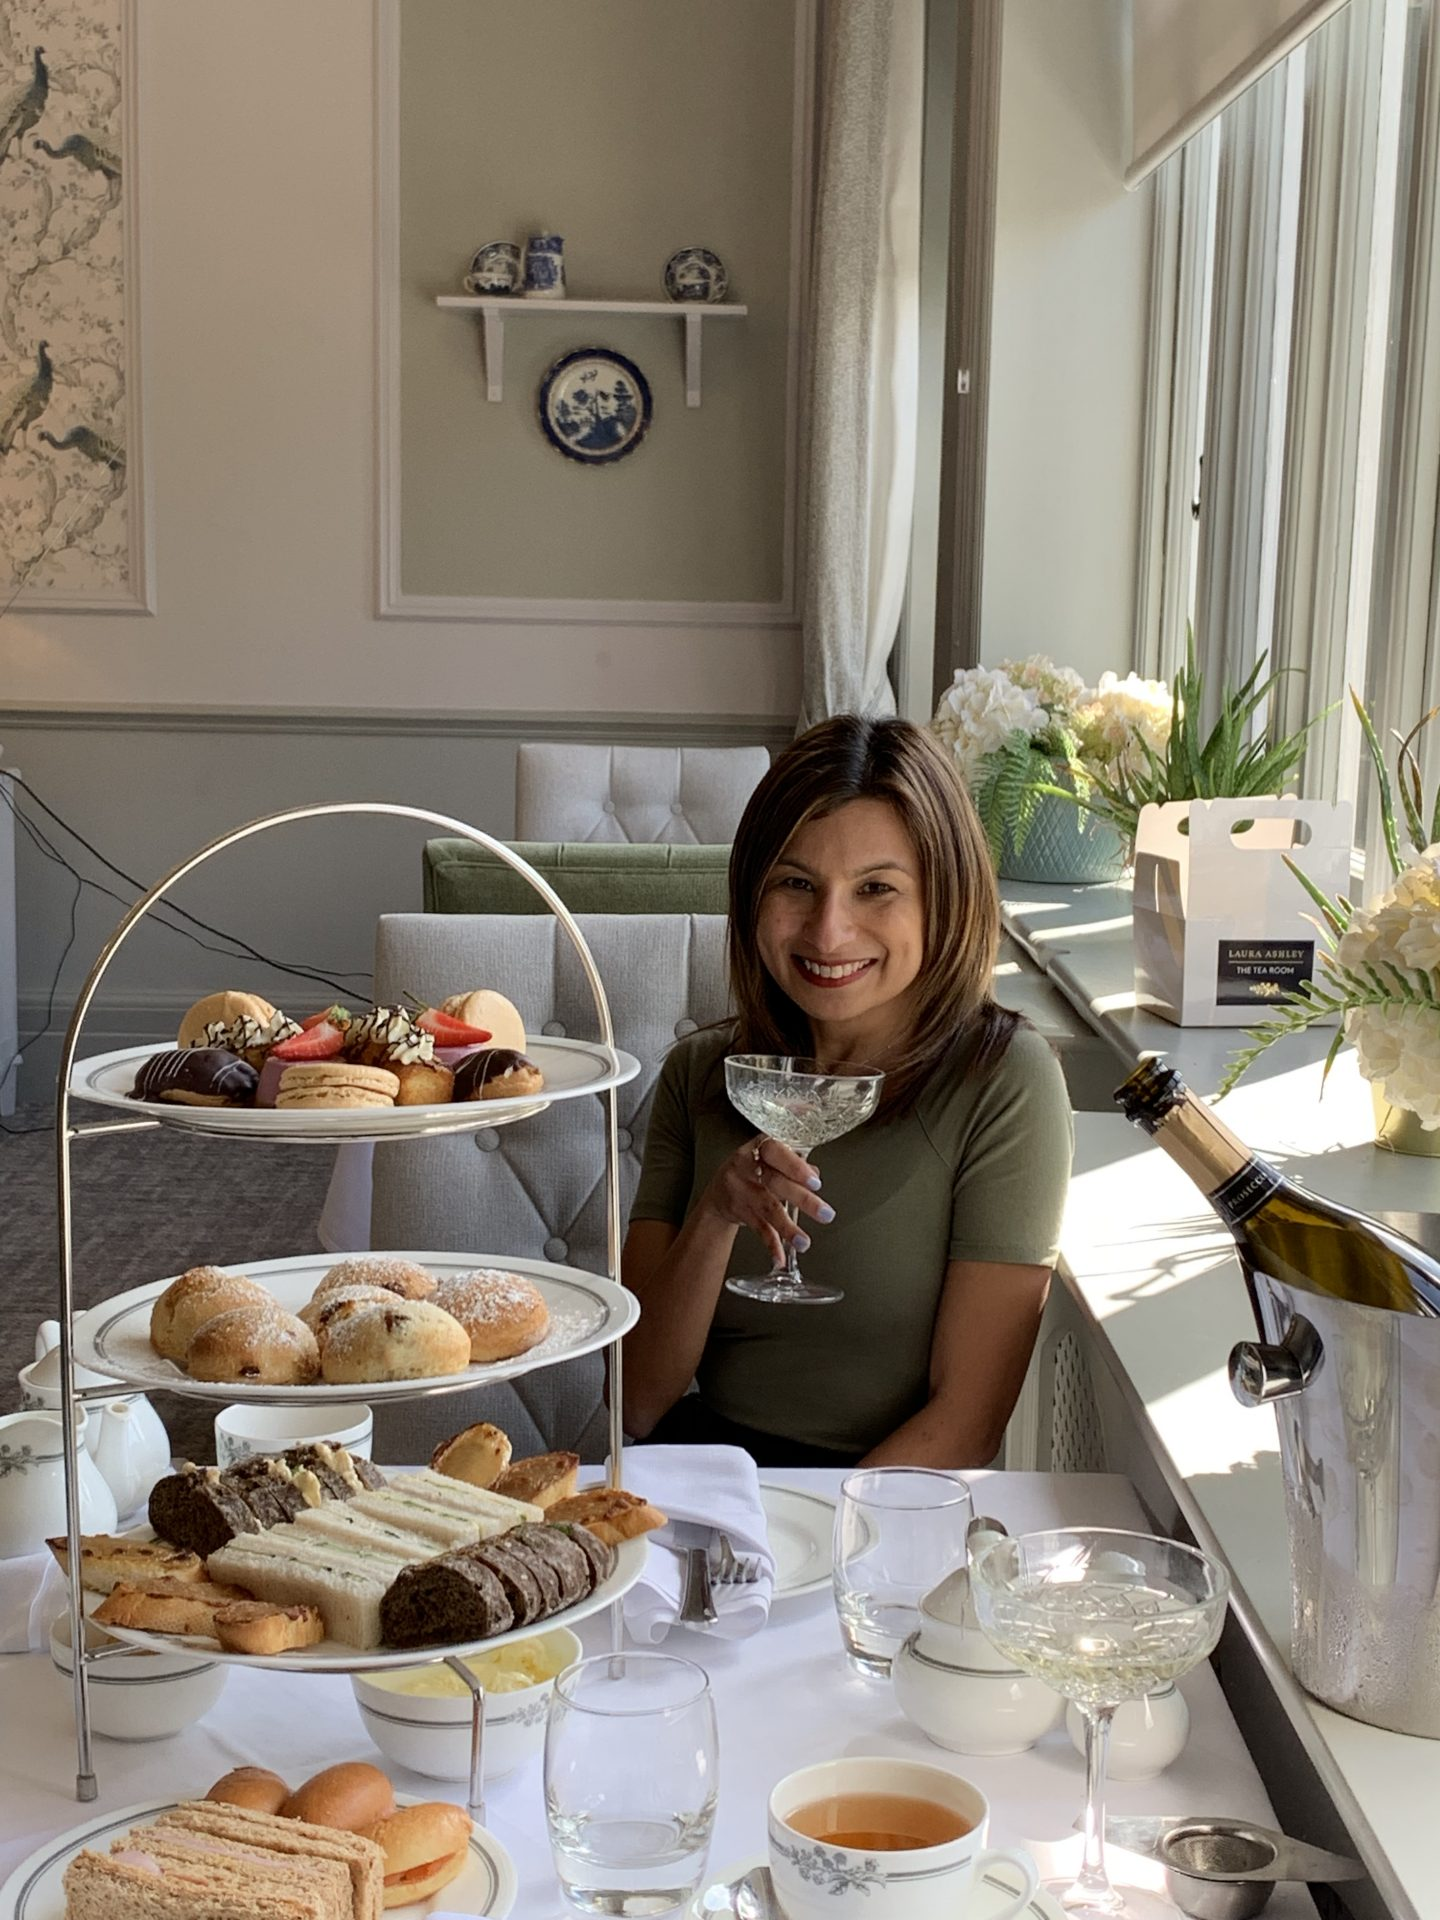 Experiencing the Laura Ashley Afternoon Tea and an overnight stay at the Laura Ashley Hotel, The Iliffe